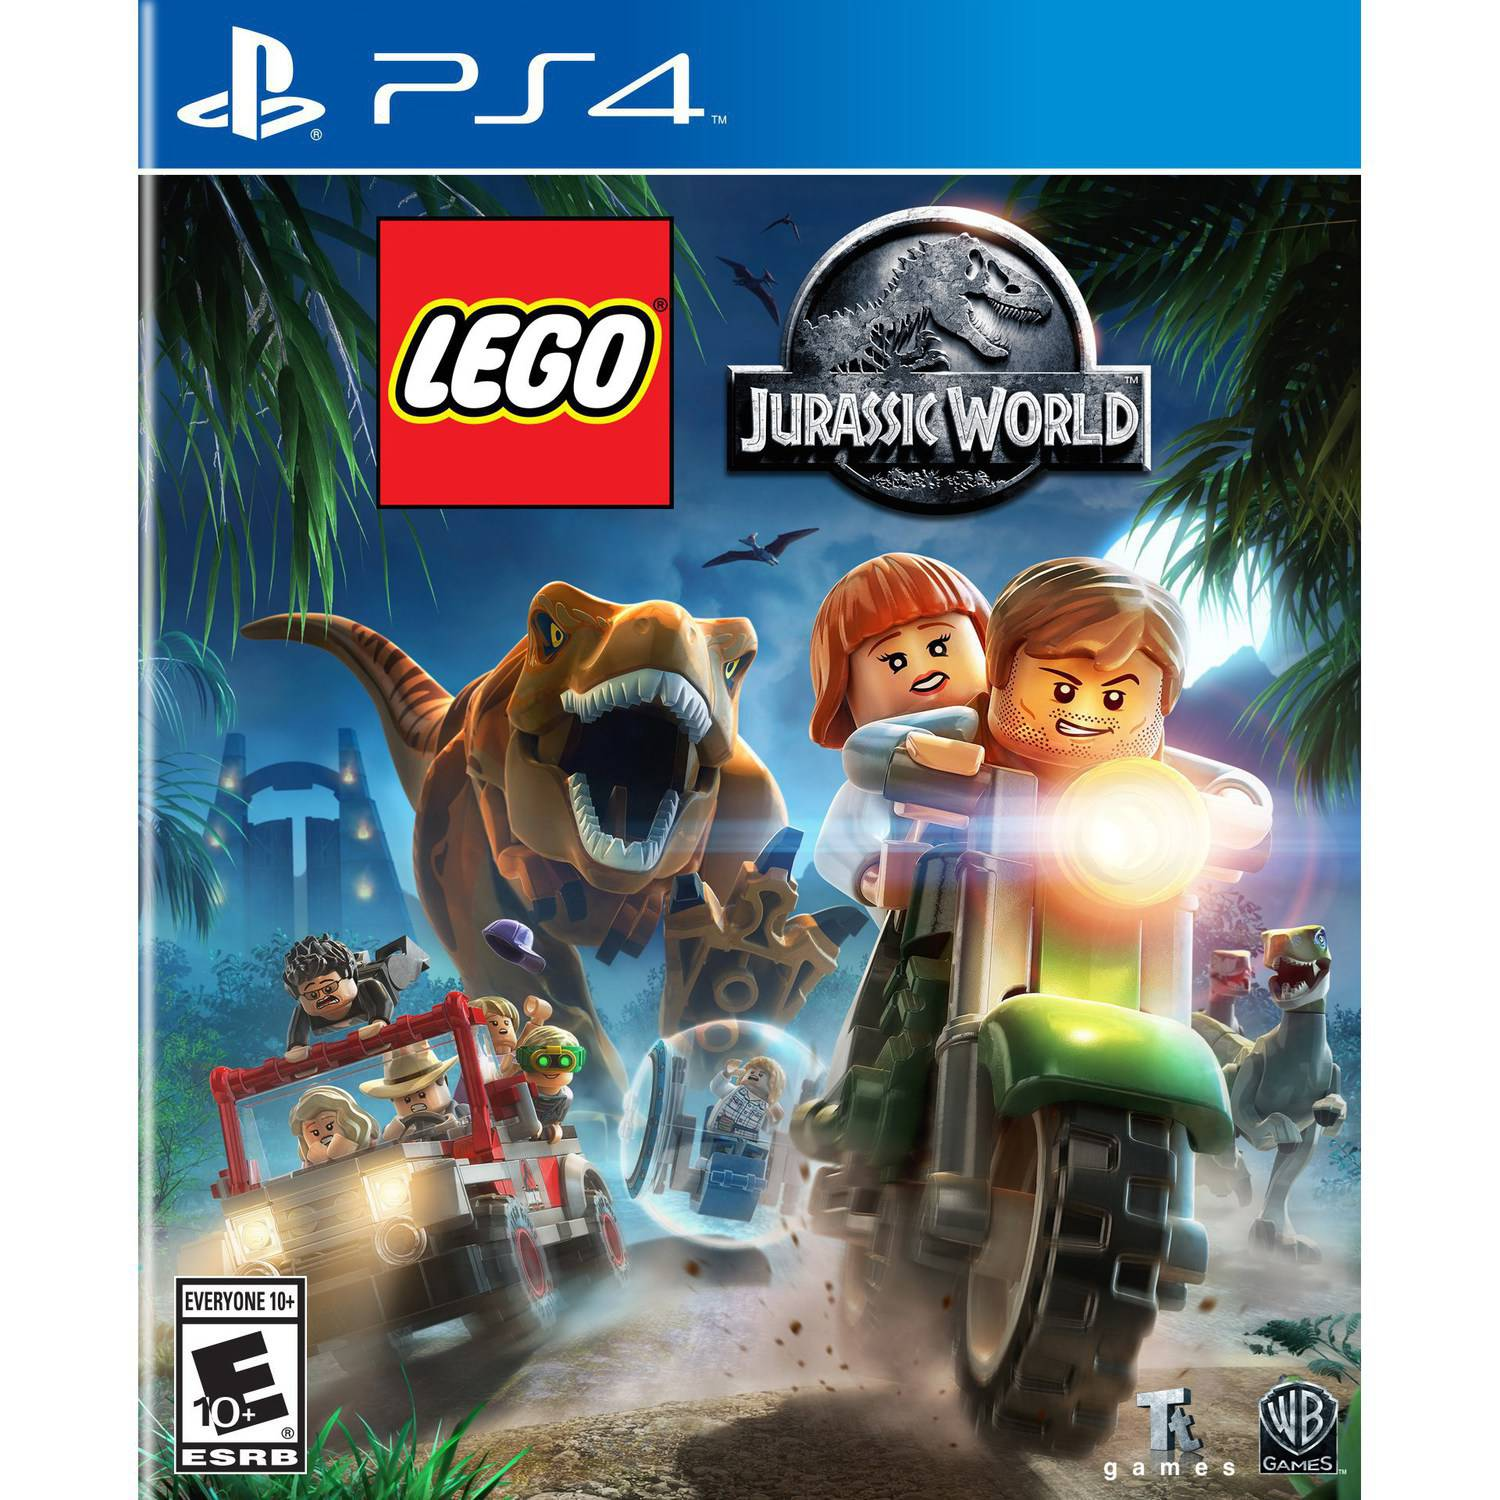 Lego Jurassic World (PS4) - Pre-Owned